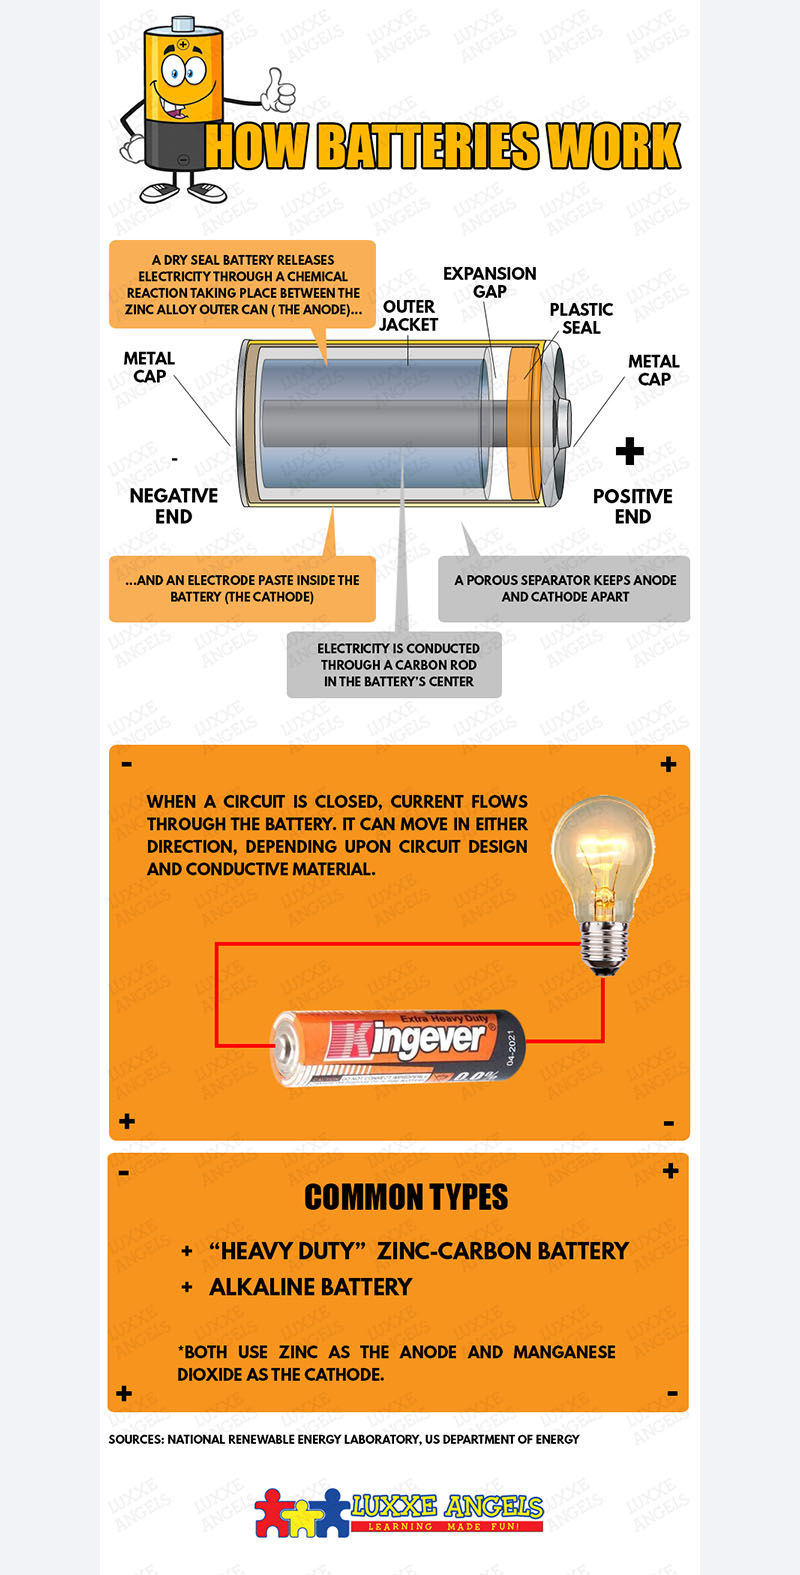 hight resolution of specifications of kingever aaa battery 1 pack batteries for home office and school use